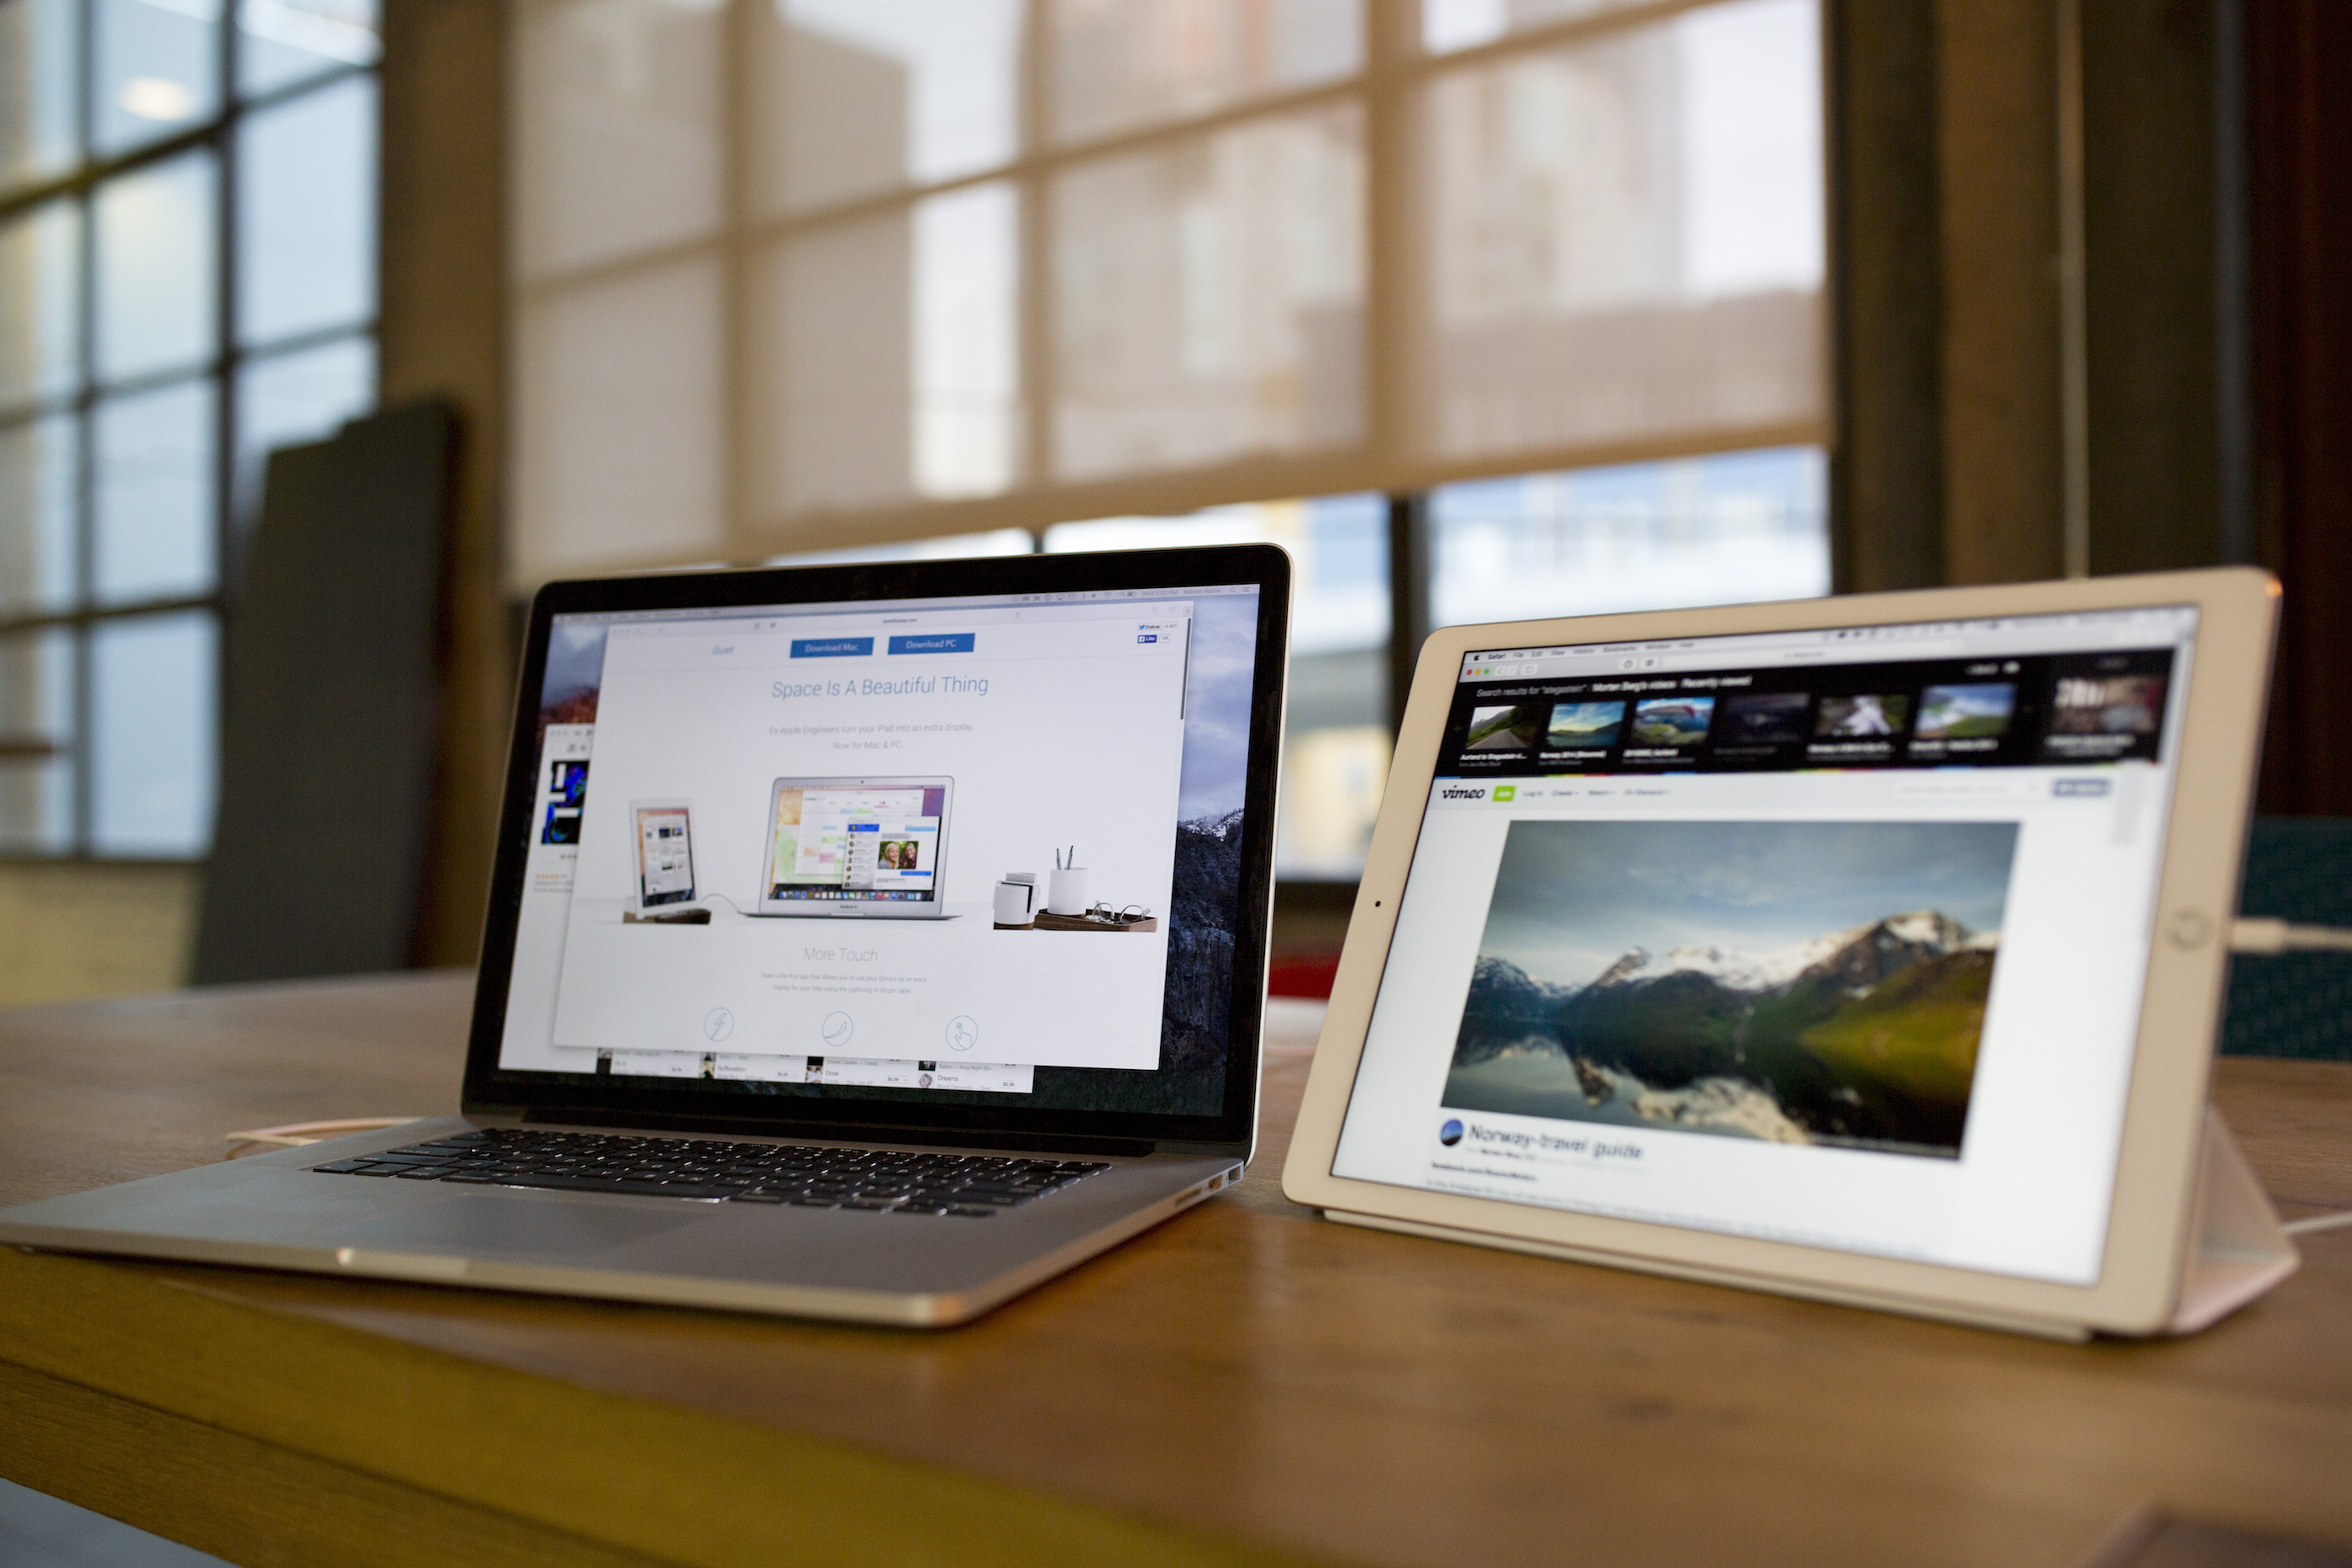 Duet Display 2 uses hardware acceleration to catch up with Luna